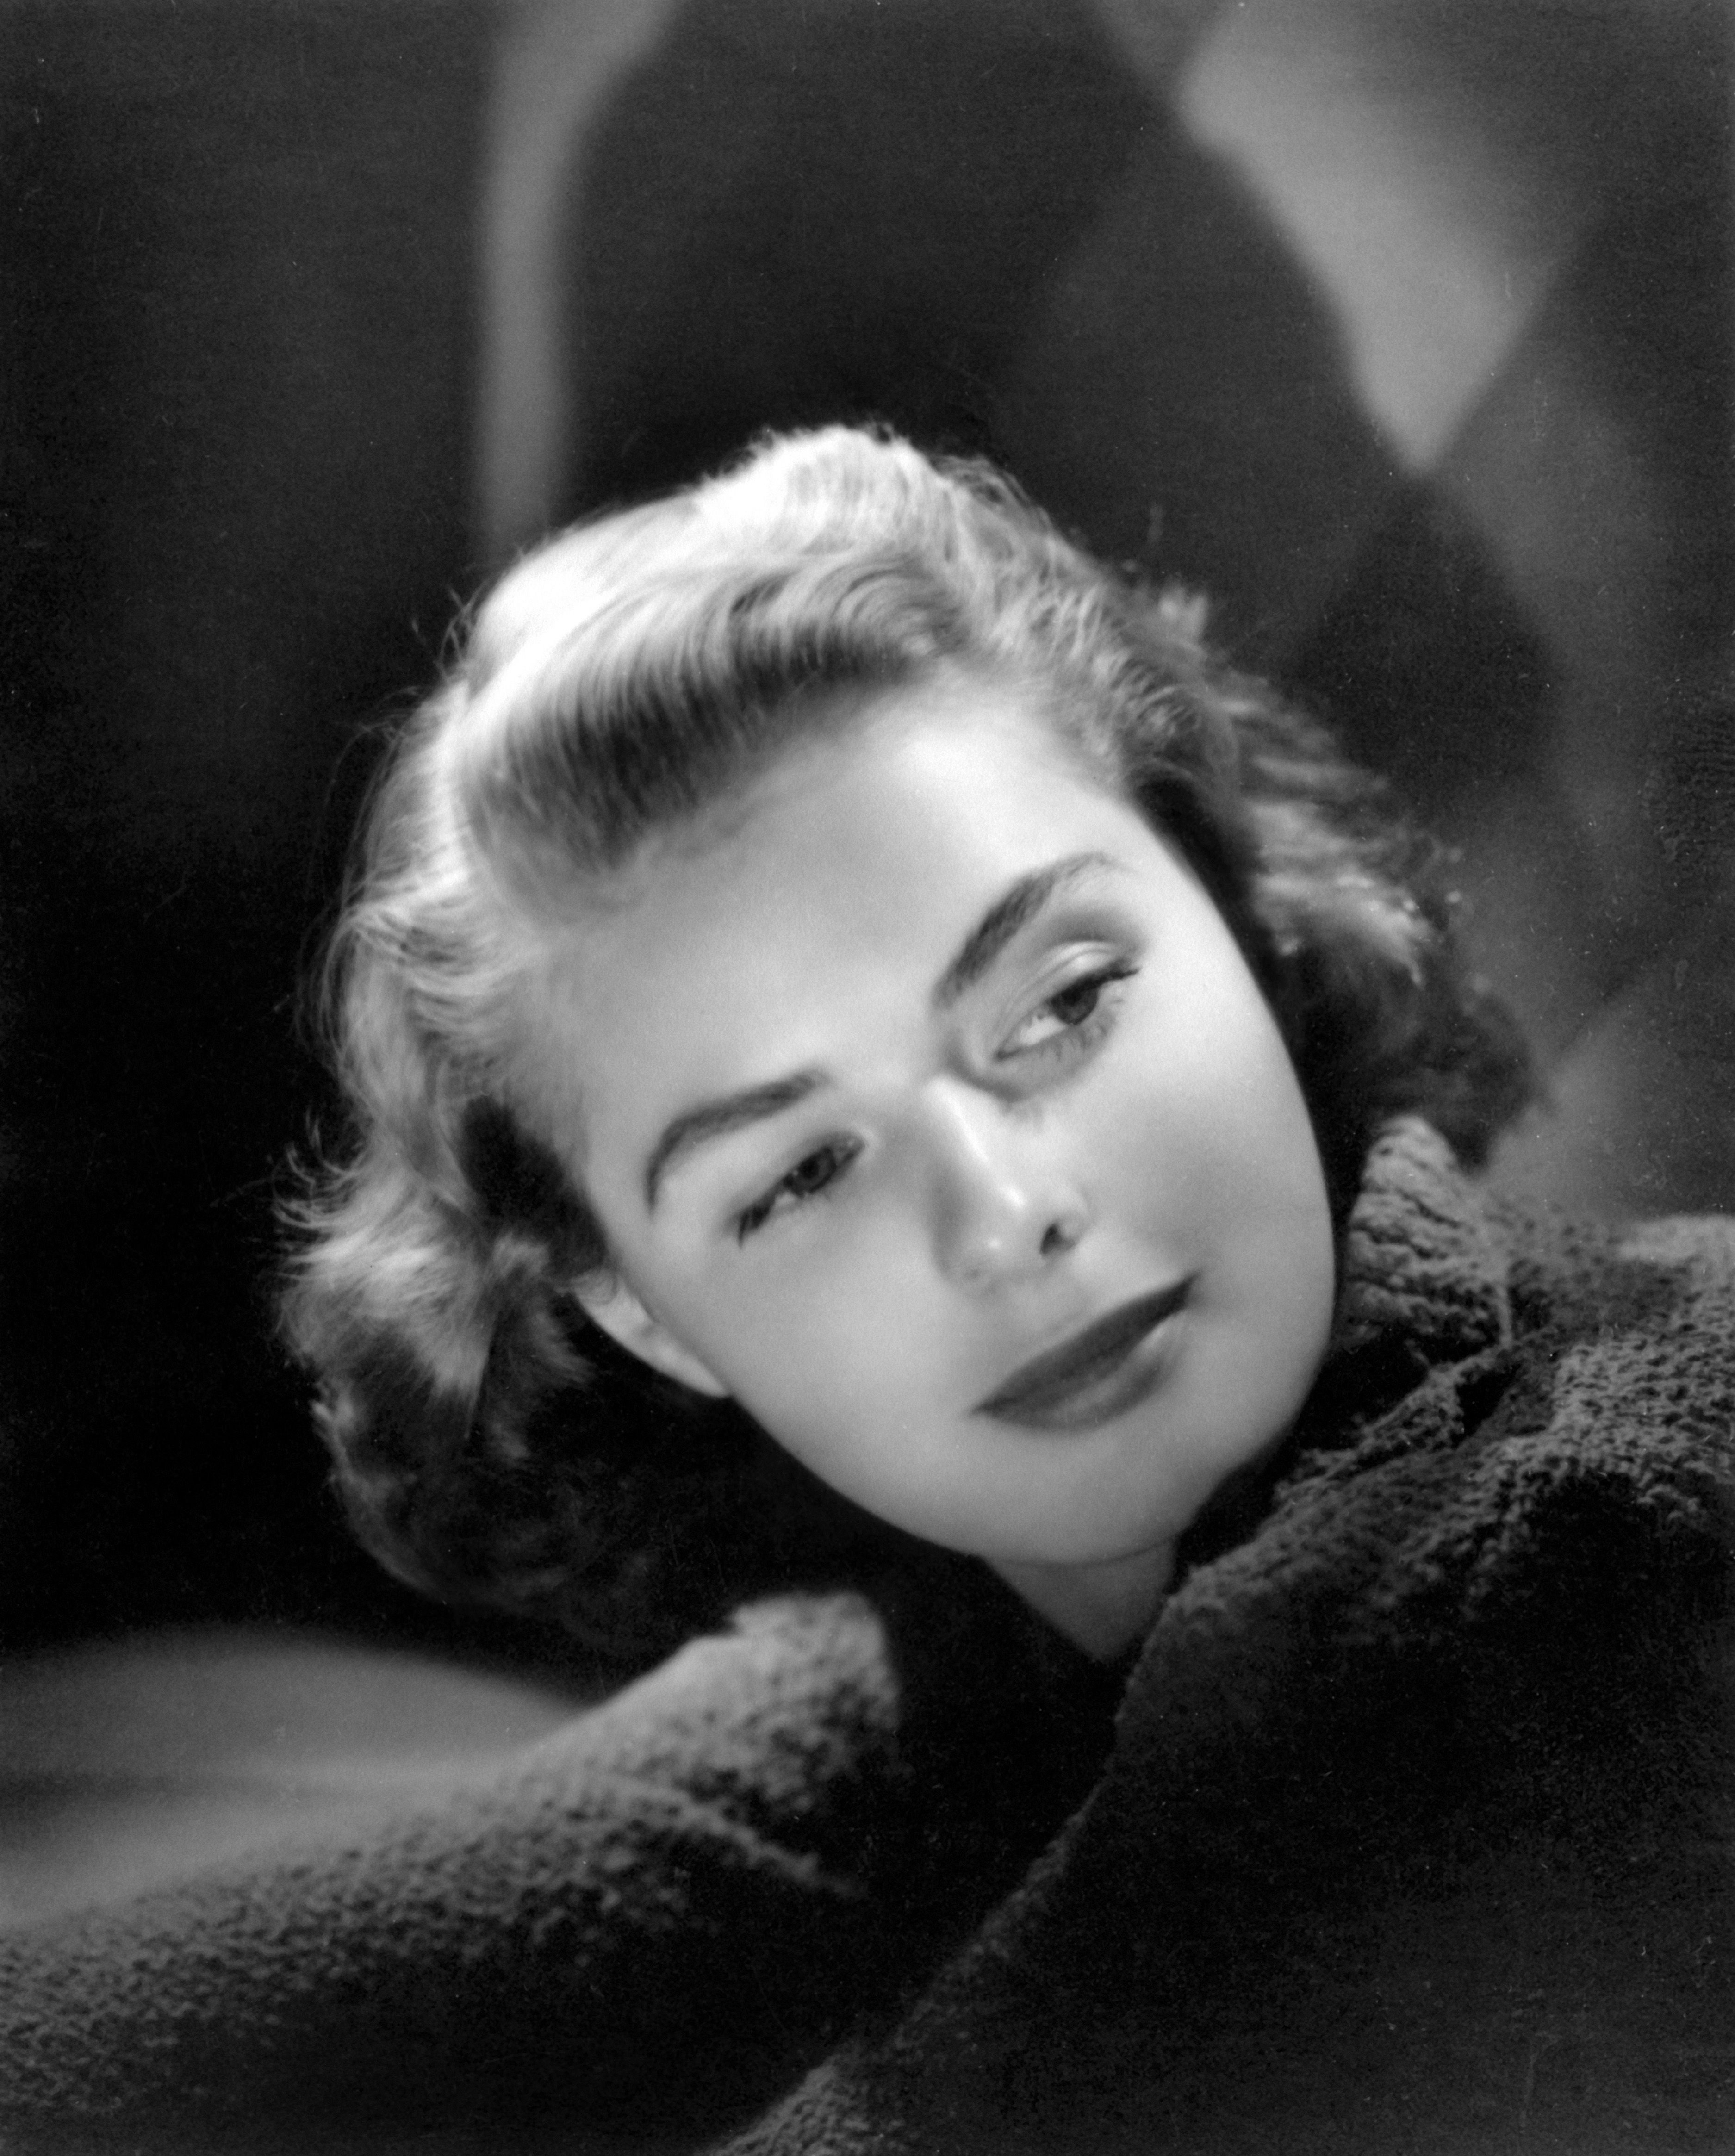 Ingrid Bergman, Swedish actress and film star poses for a portrait on January 01, 1940. | Photo: Getty Images